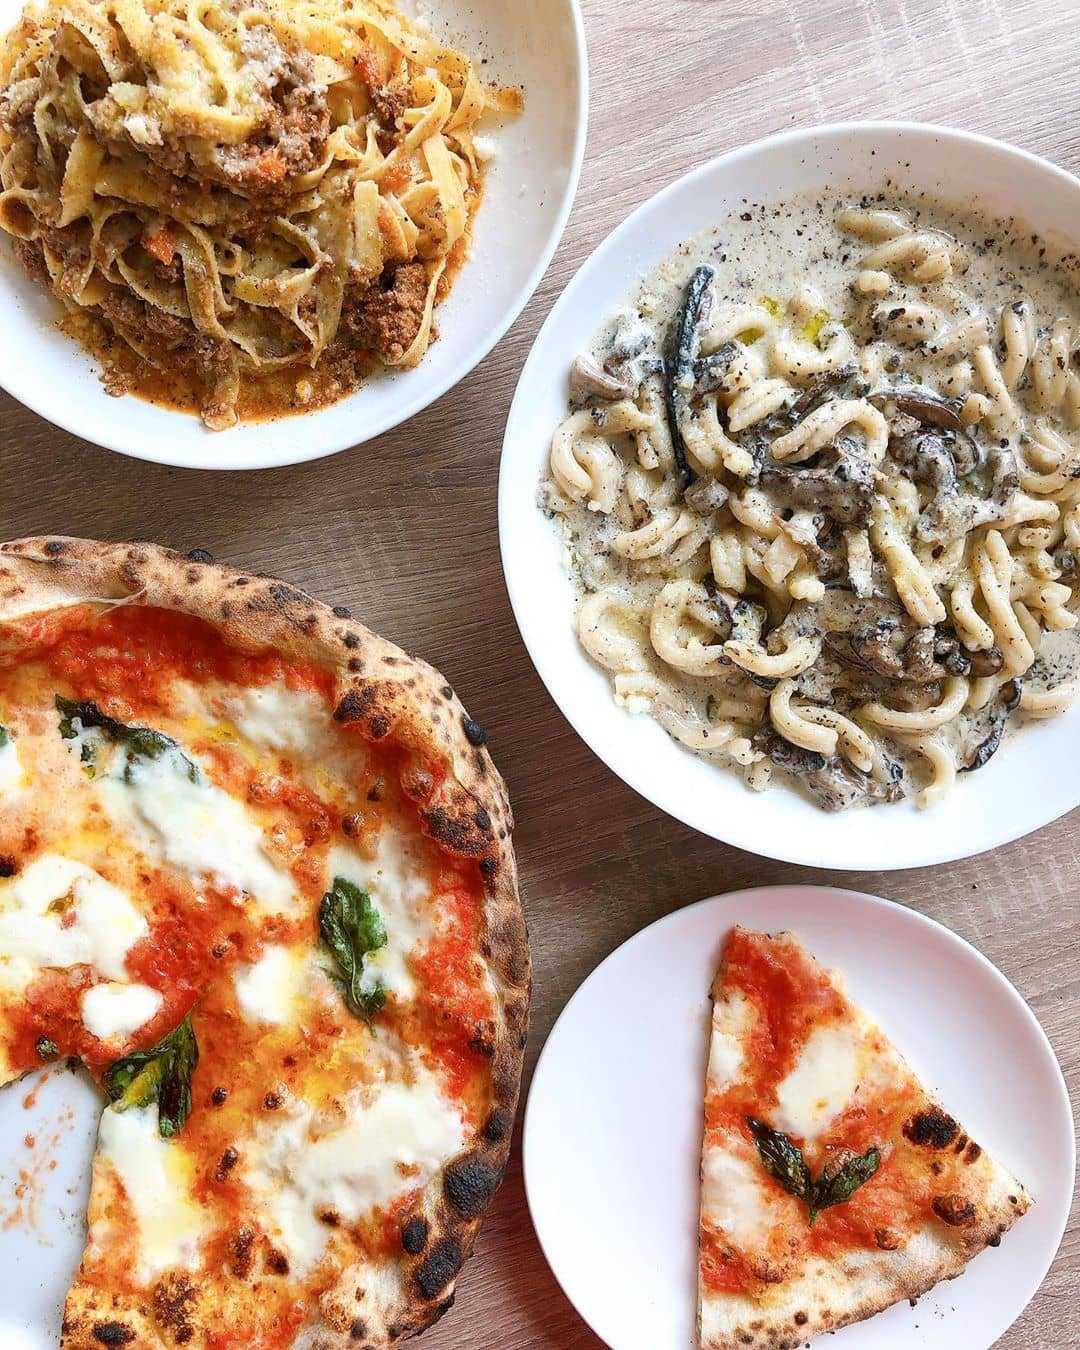 Noms Mag commercial drive neighbourhood guidebook sopra sotto